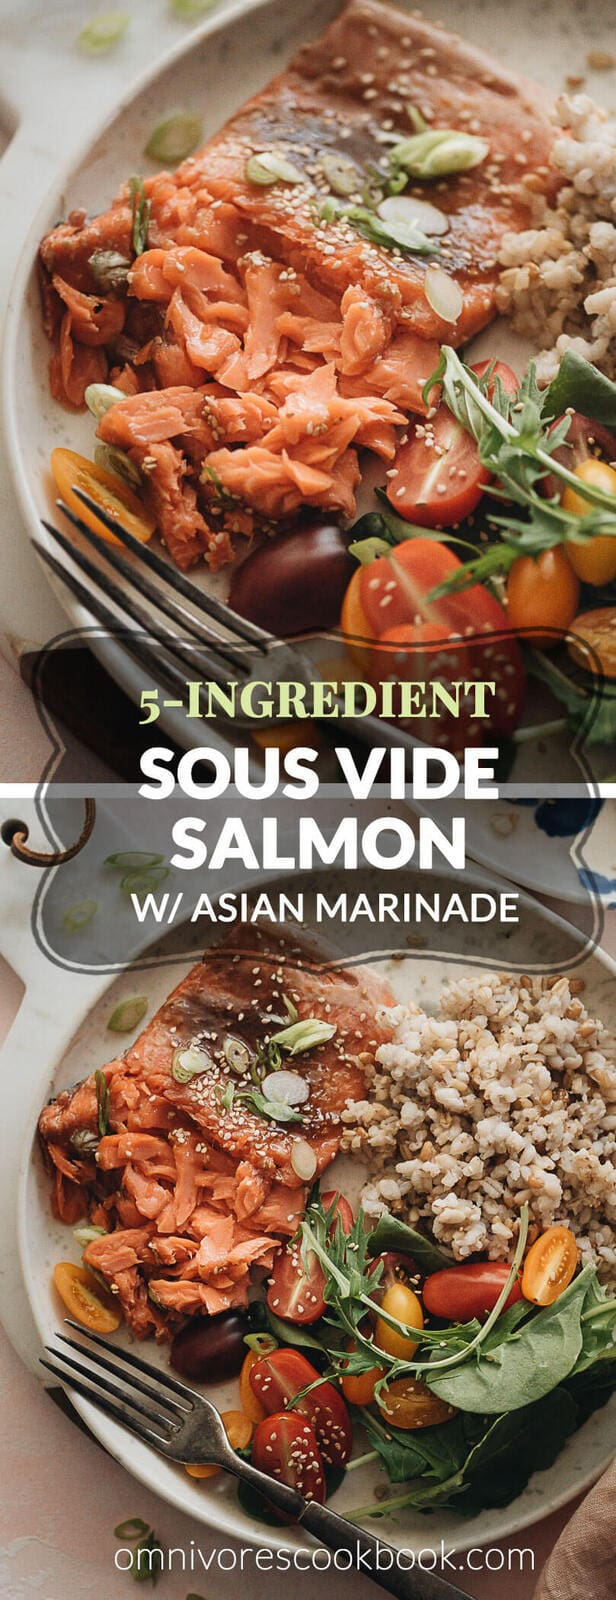 5-Ingredient Sous-Vide Salmon with Asian Sauce - cooking moist, tender, and flaky salmon in a rich Asian sauce without marinating. #ad #FoodSaverSousVide #simple #fillet #recipes #healthy